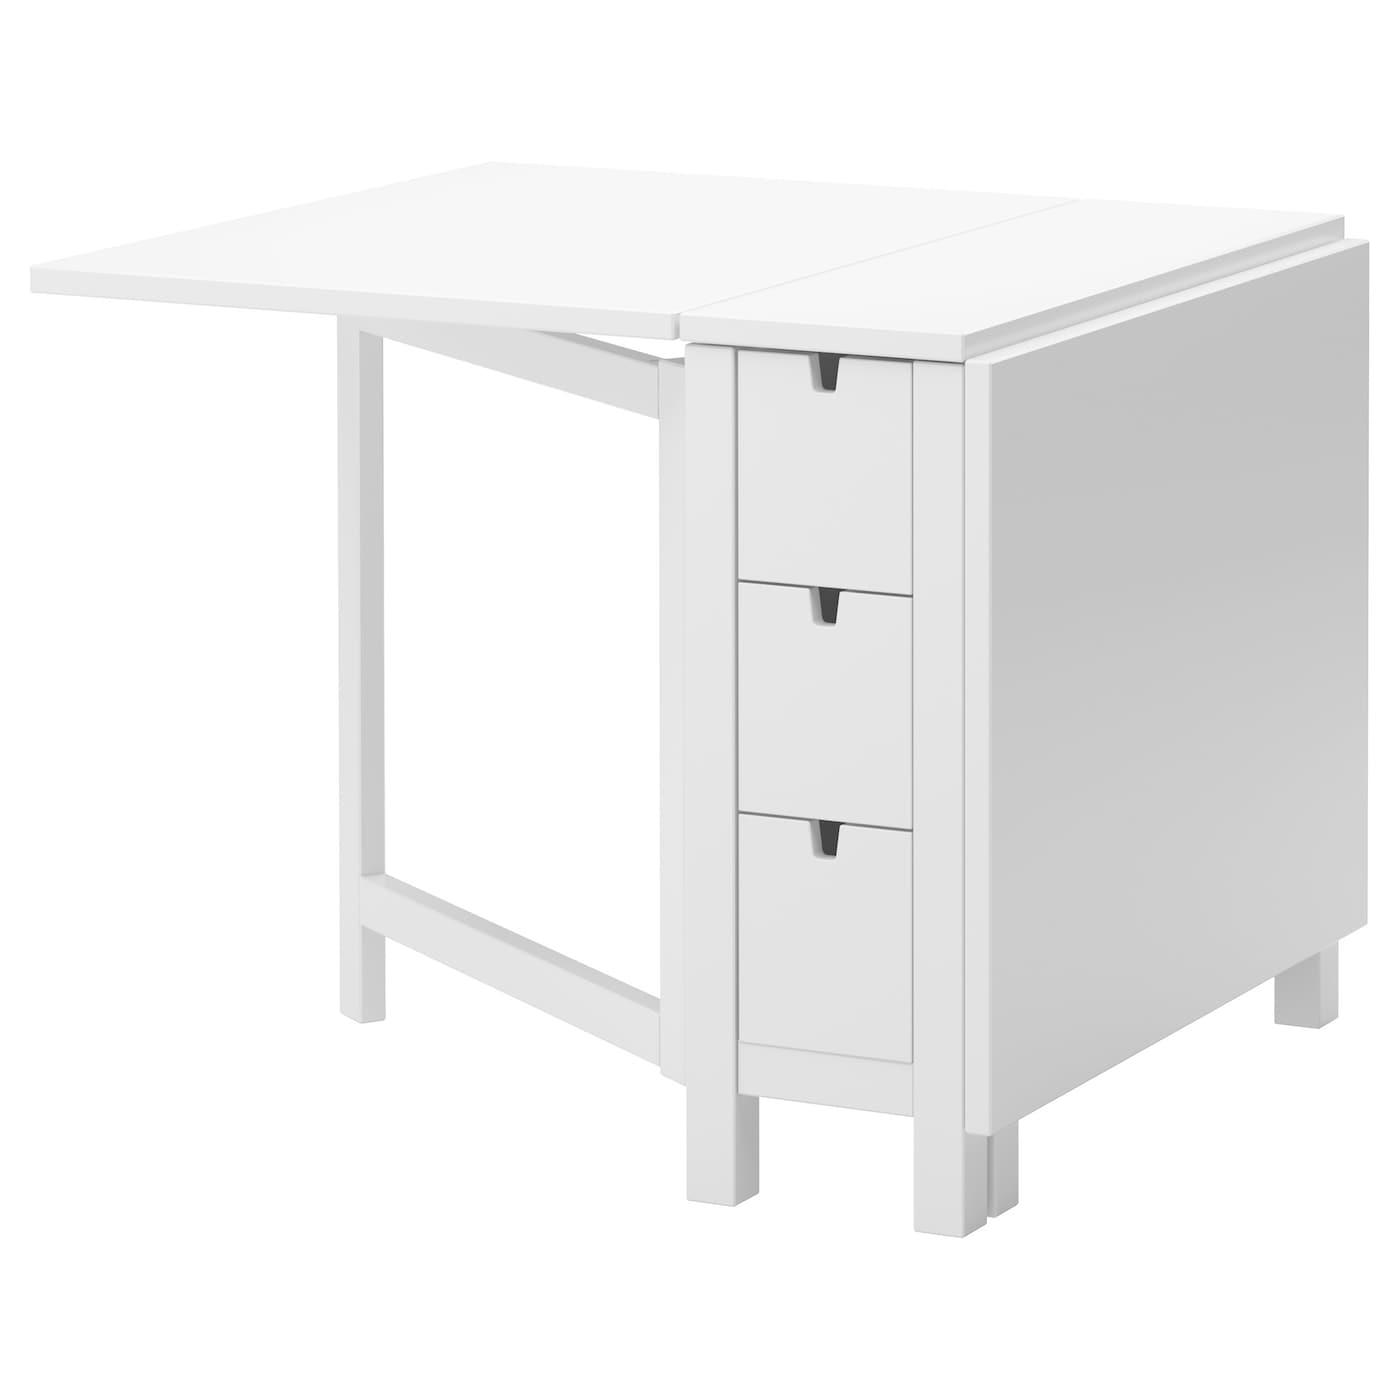 Dining tables kitchen tables dining room tables ikea - Tavolo a libro ikea ...